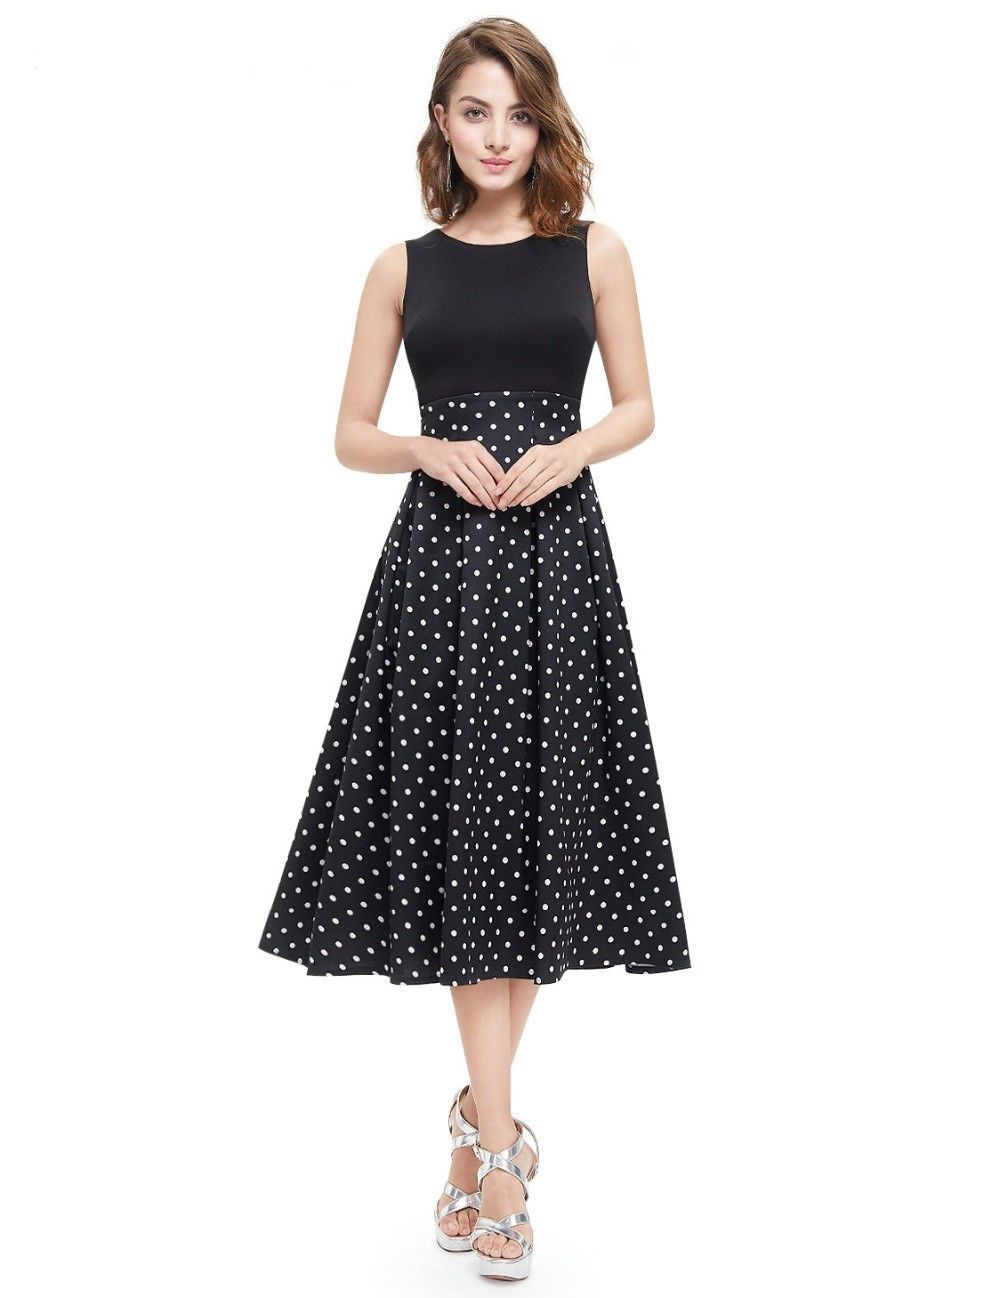 Women\'s A-Line Sleeveless Party Dress | Fashion | Pinterest | 50er